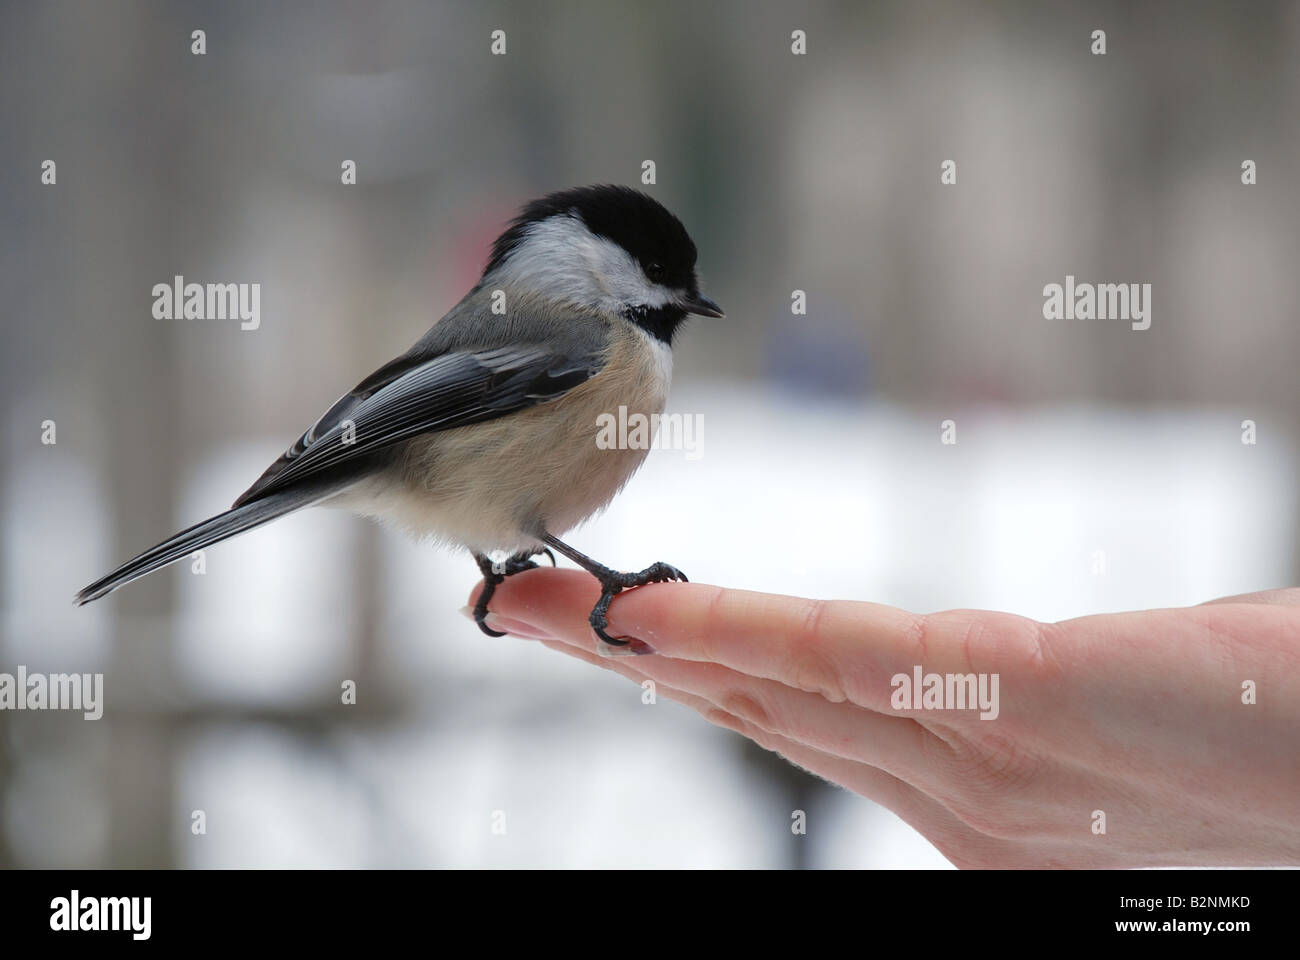 Black-capped Chickadee (Poecile atricapilla) - Stock Image